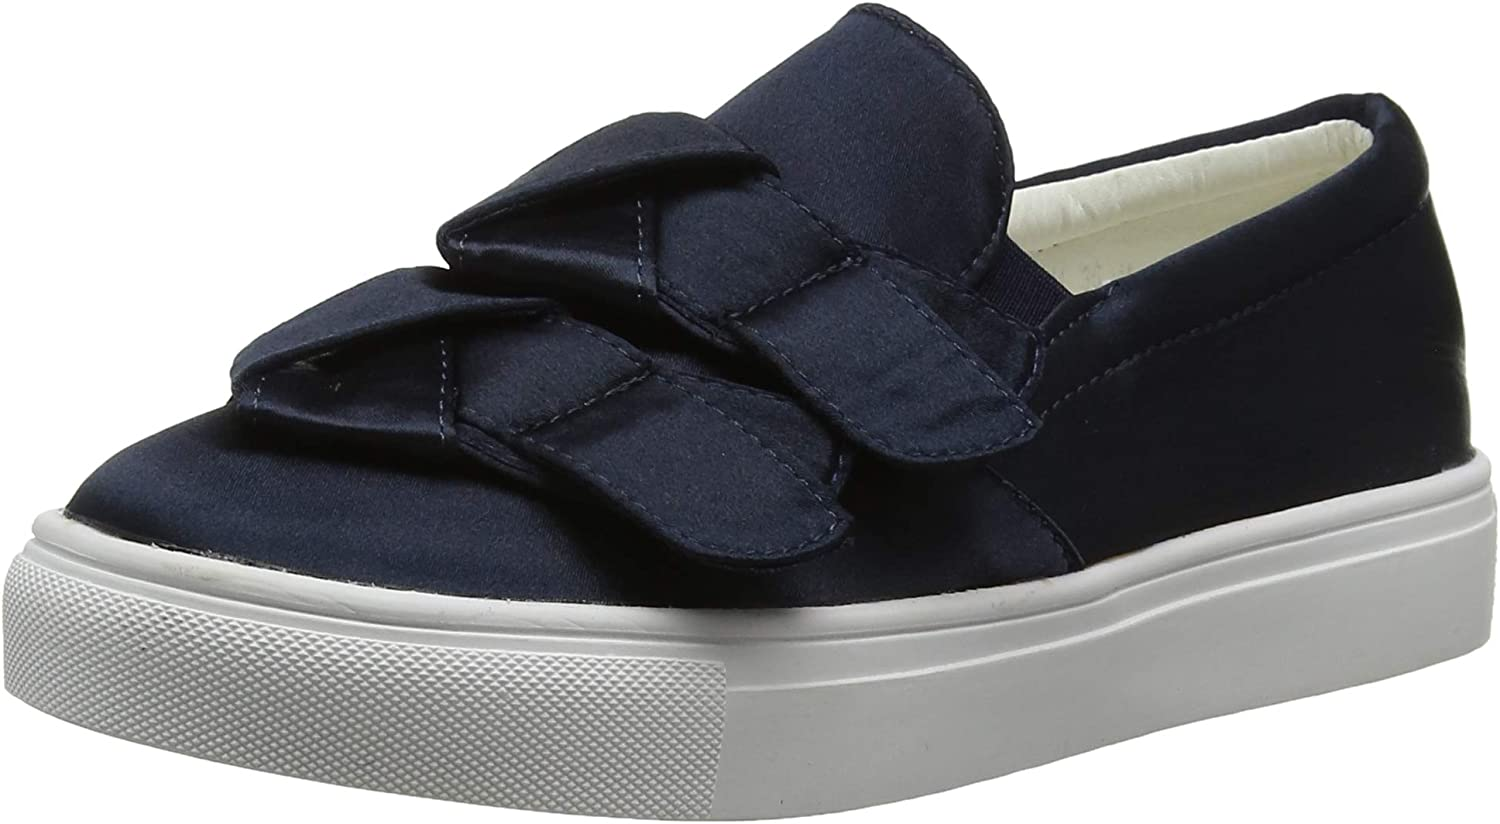 Lost Ink Women's Hally Side Bow Slip on (Wide Fit) Trainers